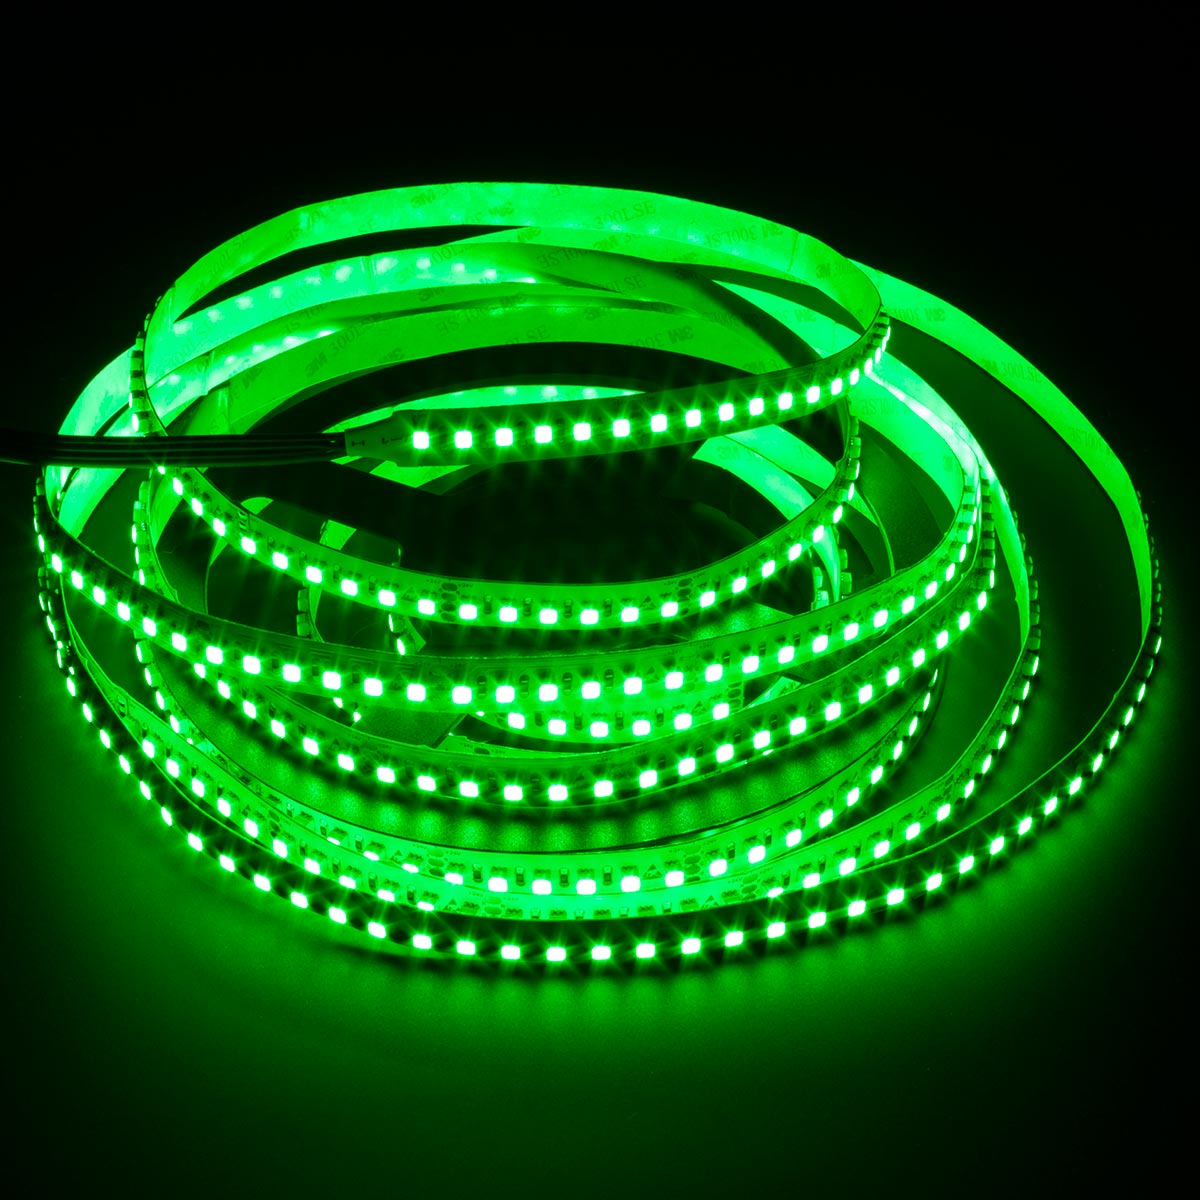 Color Changing Rgb 3535 150w Led Strip Light